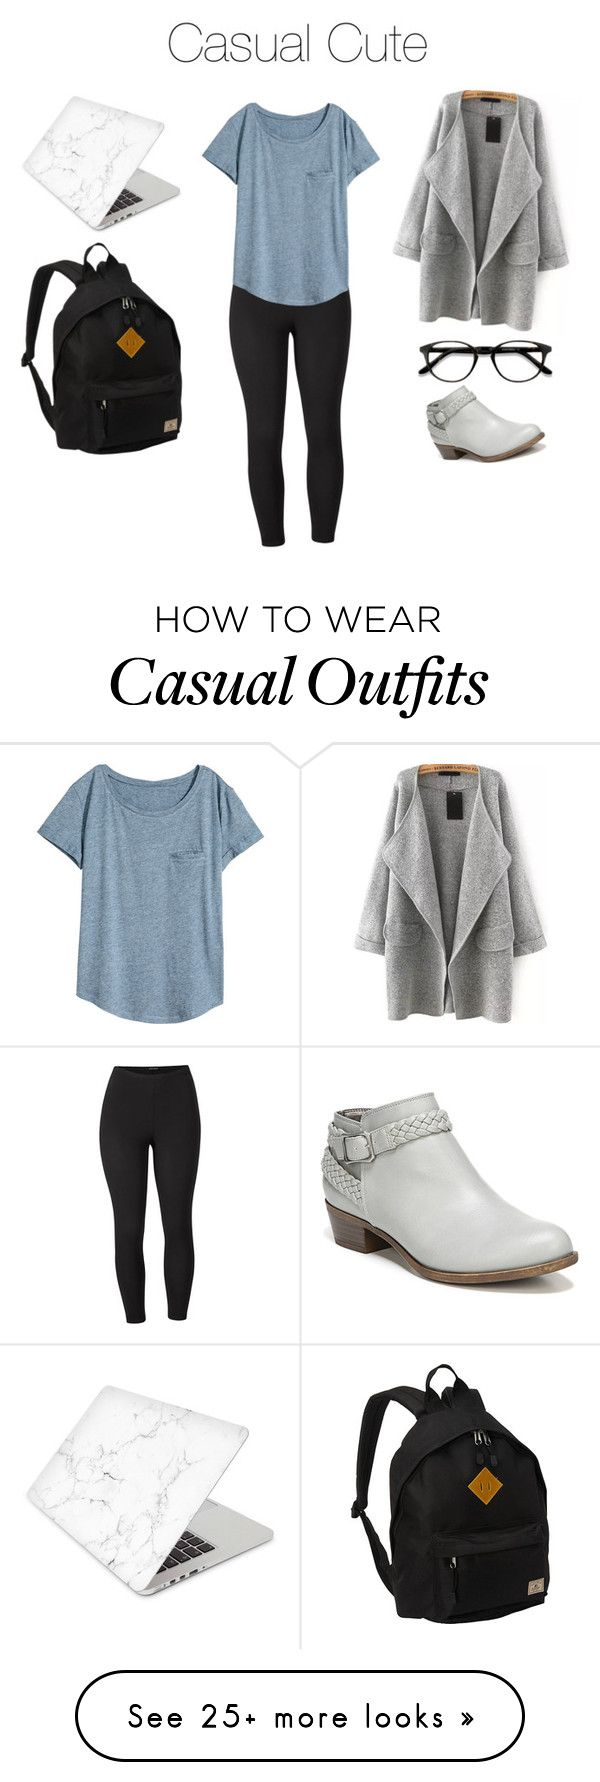 """College Casual - Cute"" by livchilton on Polyvore featuring Venus, H&M, EyeBuyDirect.com, LifeStride, Everest, Recover and plus size clothing"